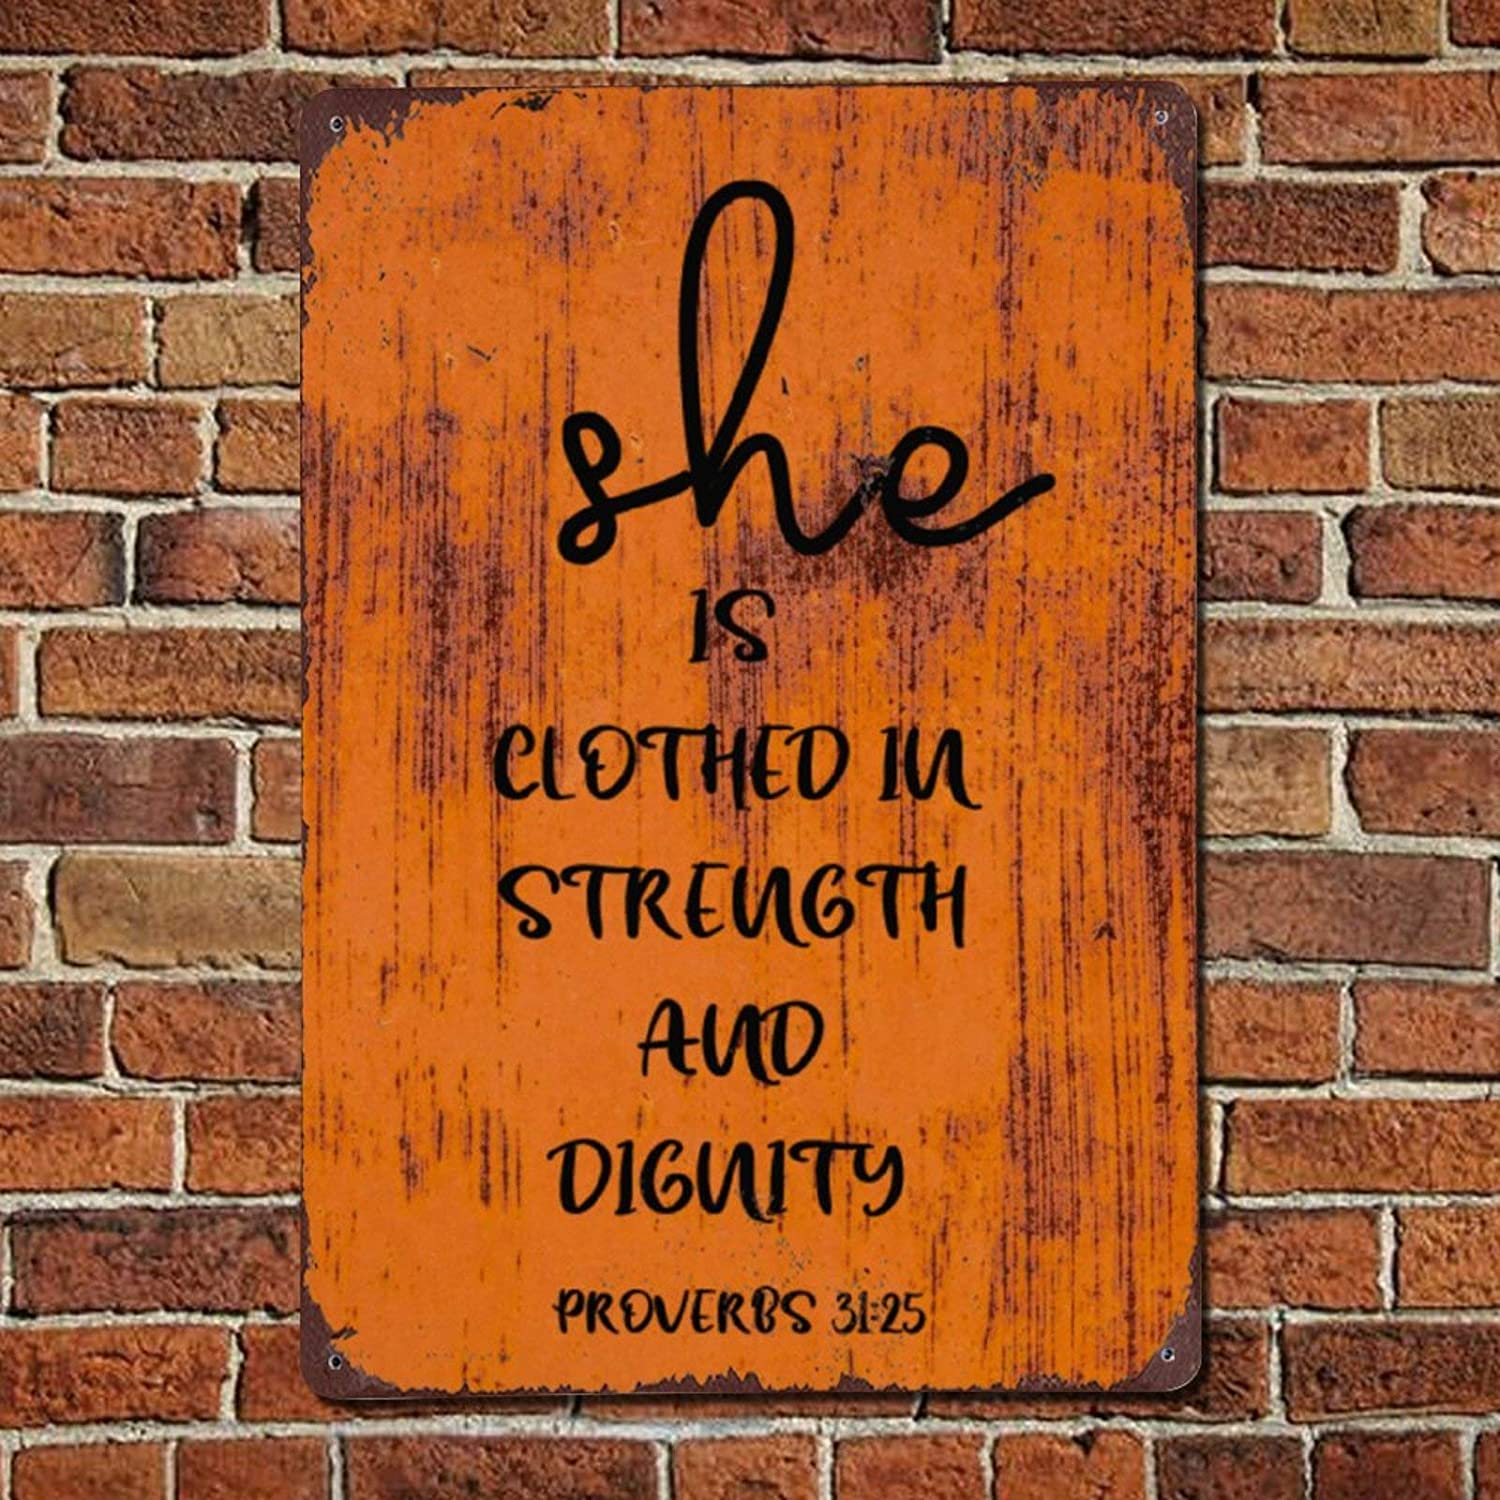 43LenaJon She is Clothed in Strength Vintage Quote Metal Sign,Retro Saying Words Sign,Rustic Inspirational Quotes Bar Men Cave Garden Wall Art,Farmhouse Aluminum Sign,Home Decor